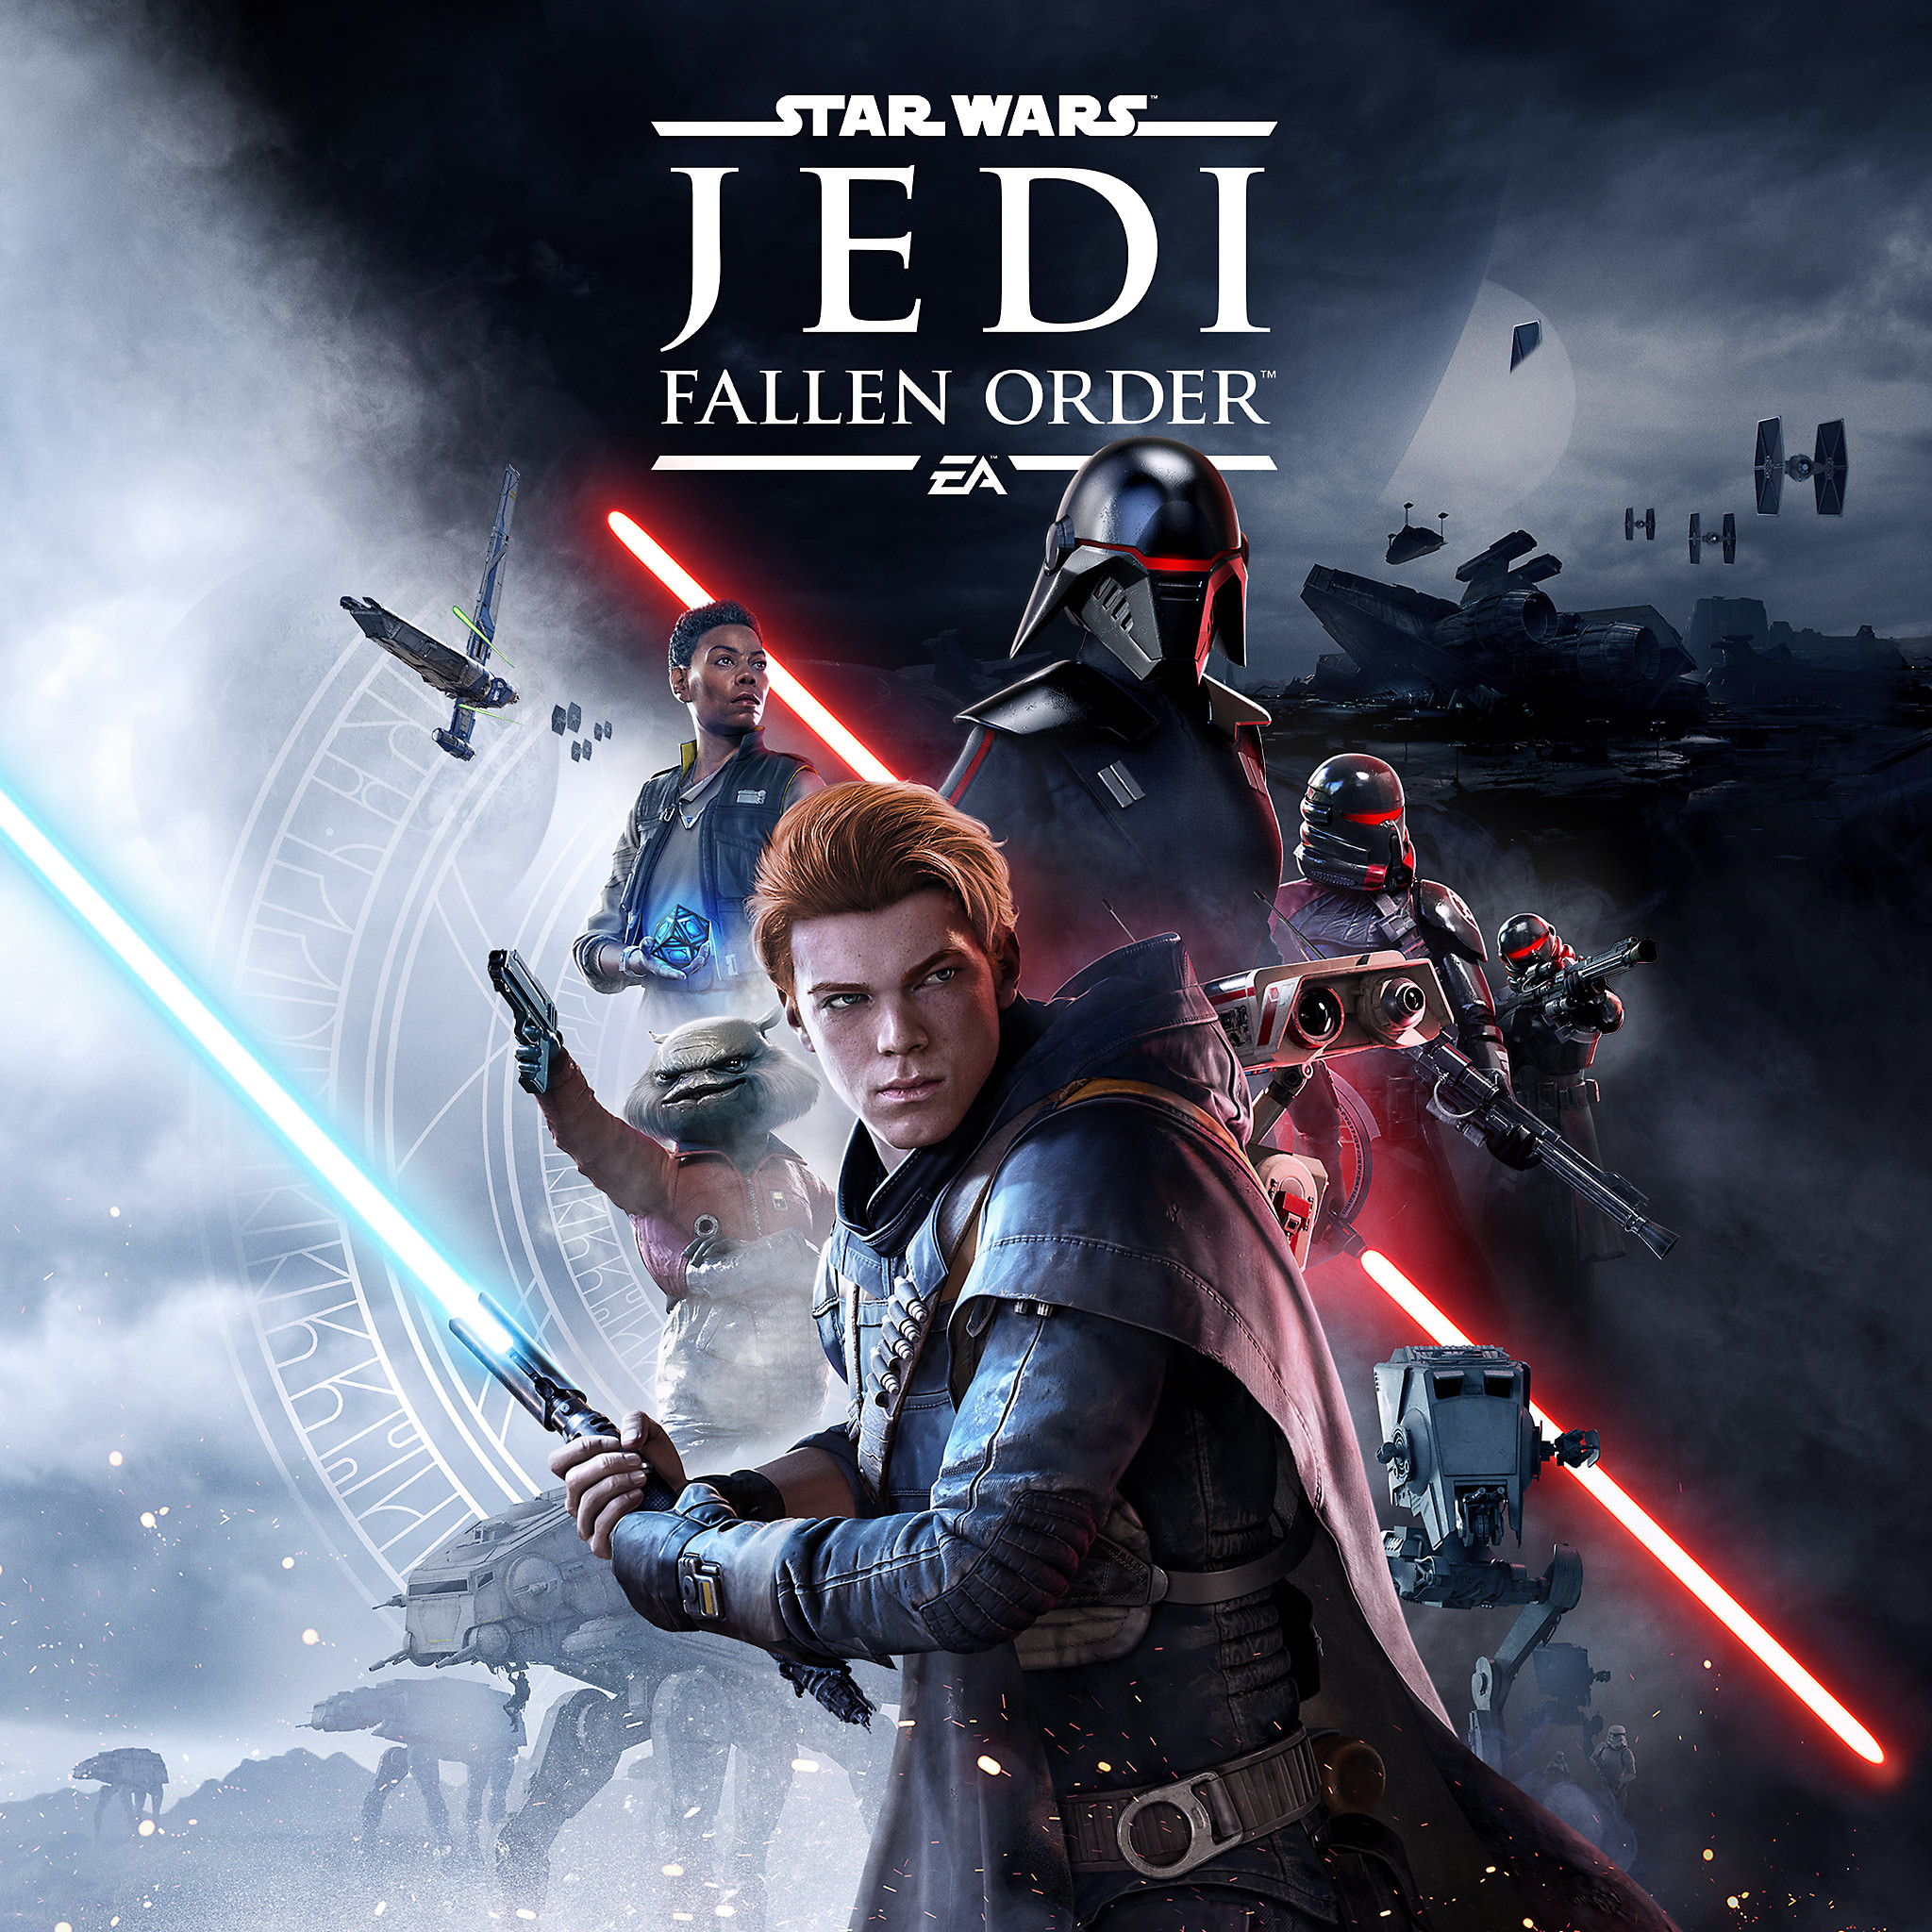 Star Wars Jedi Fallen Order - Standard Edition Art